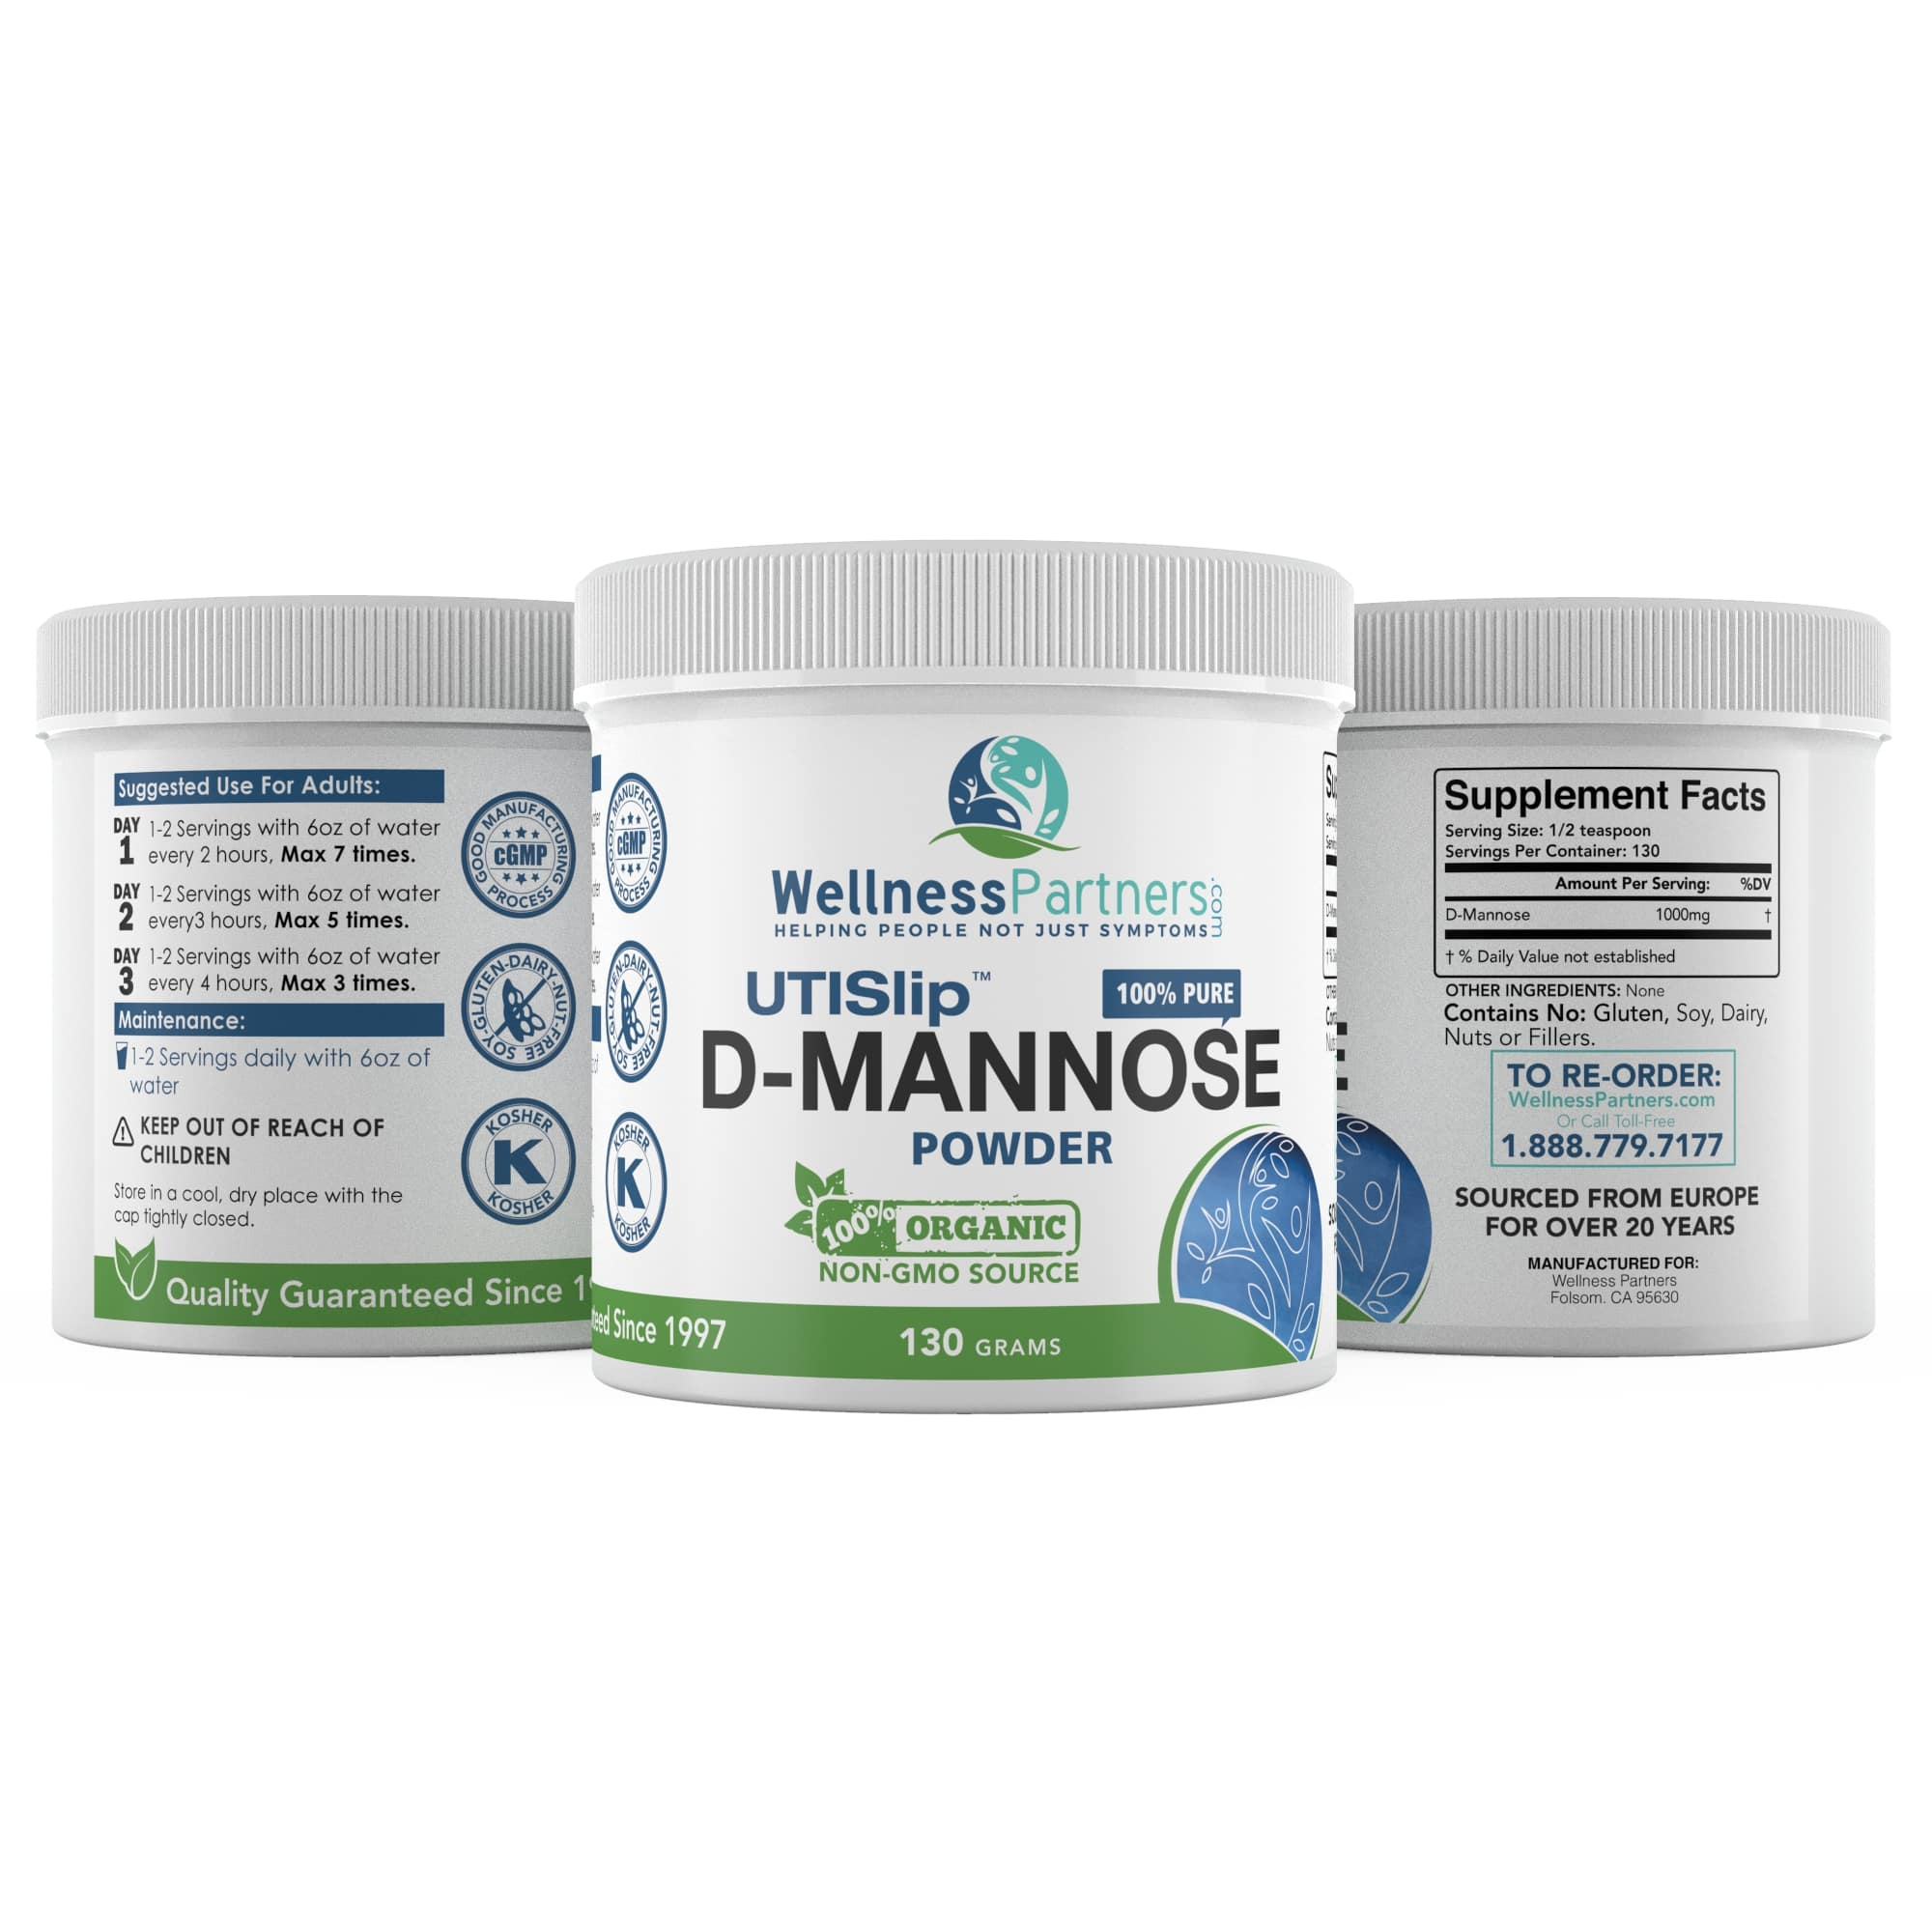 UTI Slip D-Mannose Powder 130g Large Jar